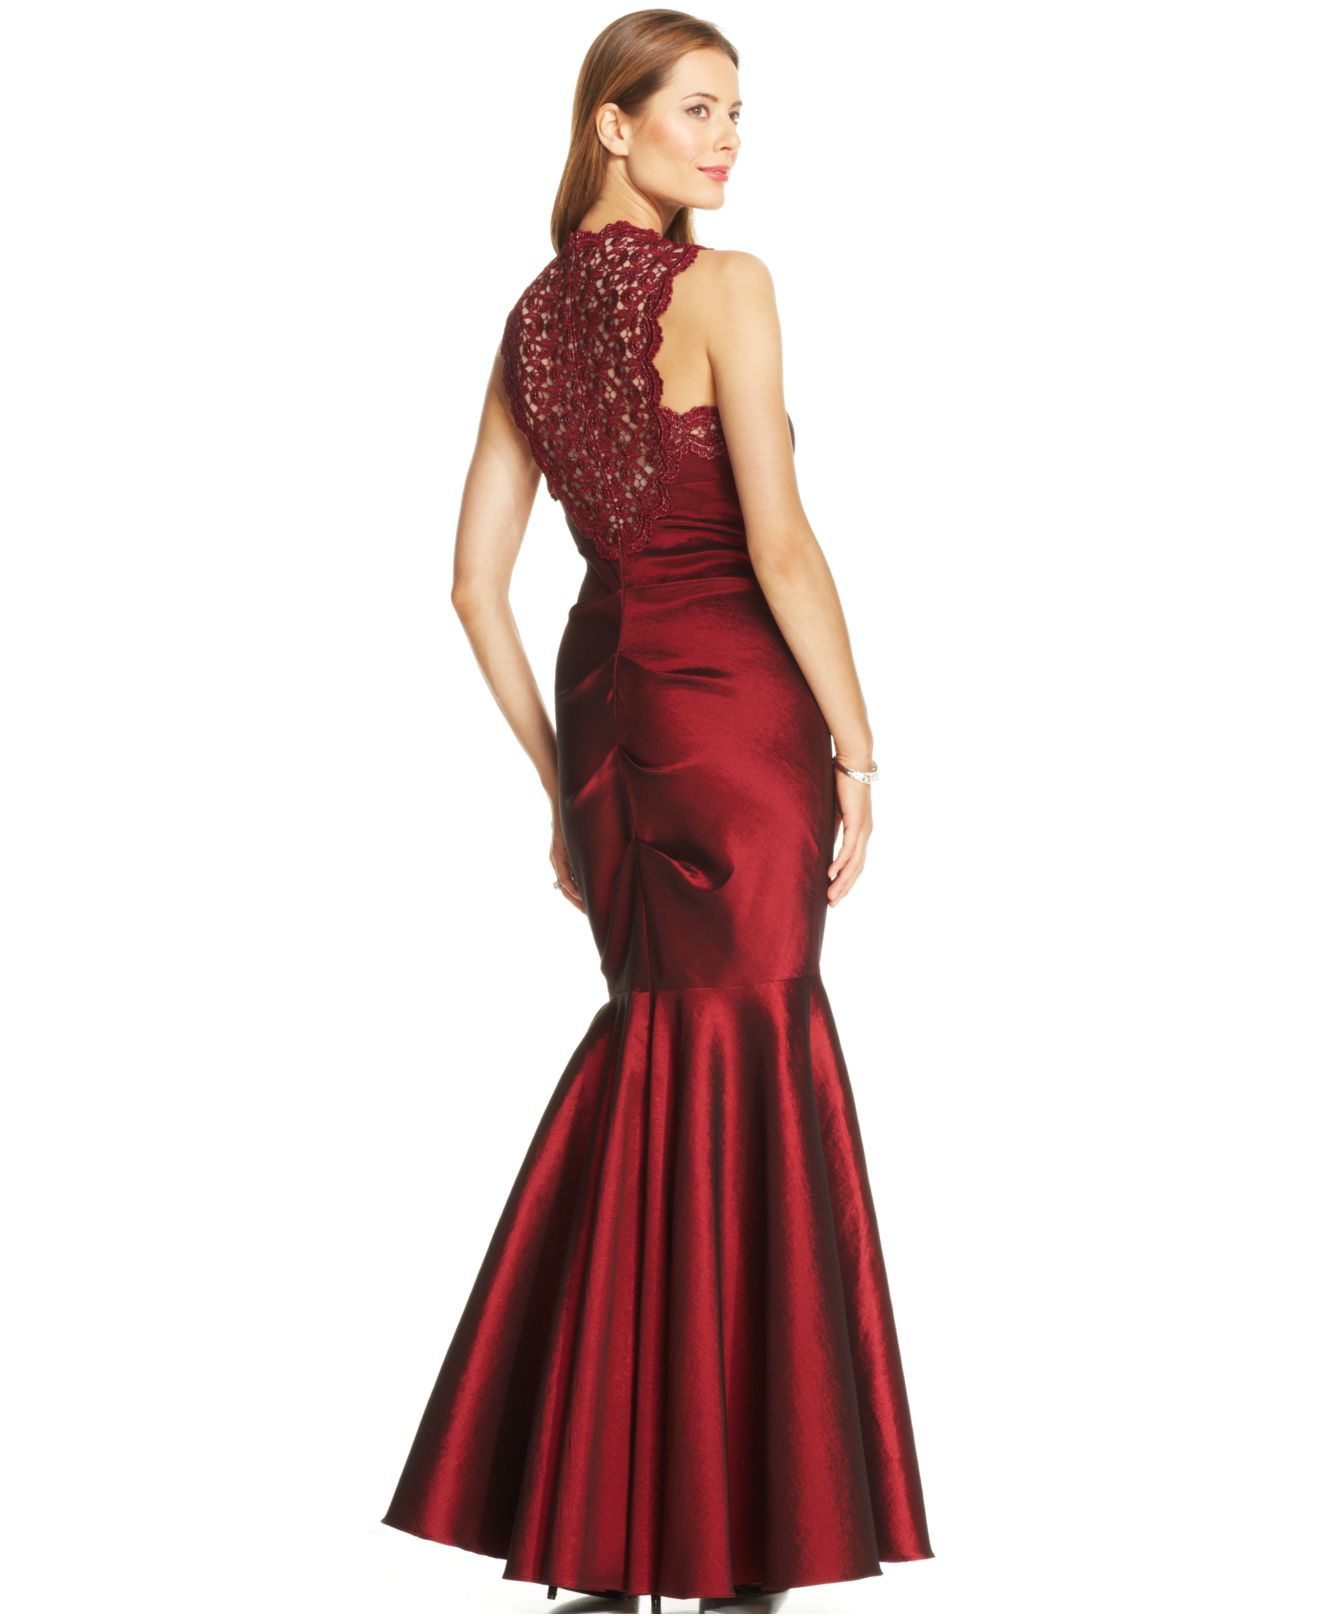 Lyst - Xscape Petite Sleeveless Glitter Lace Mermaid Gown in Red